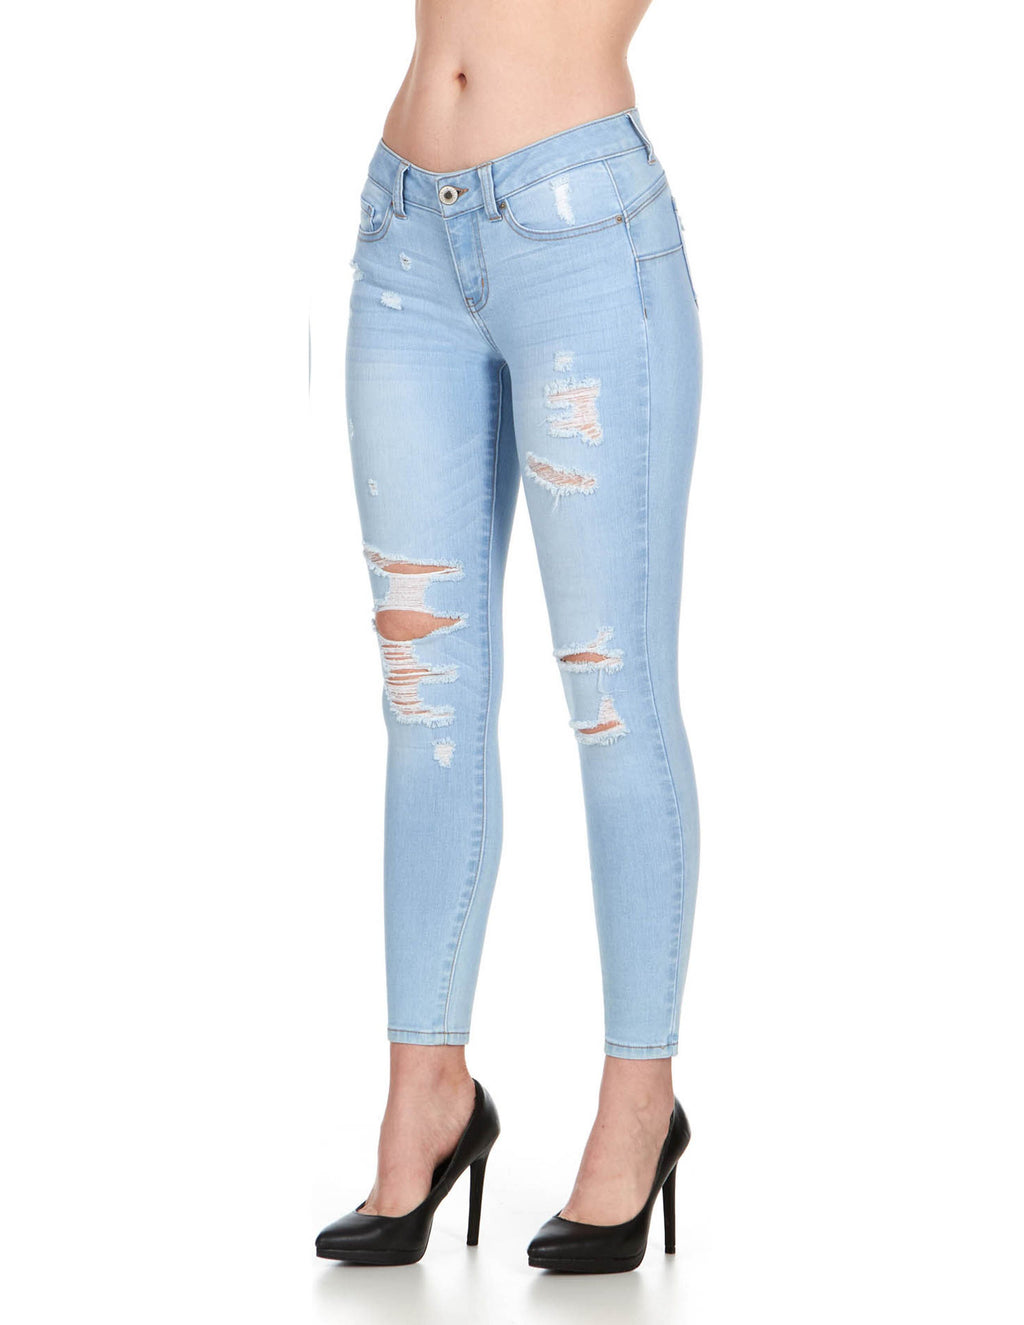 ELITE JEANS Juniors Mid Rise Push-up Distressed Skinny Jeans Women | Light Wash (P19382)